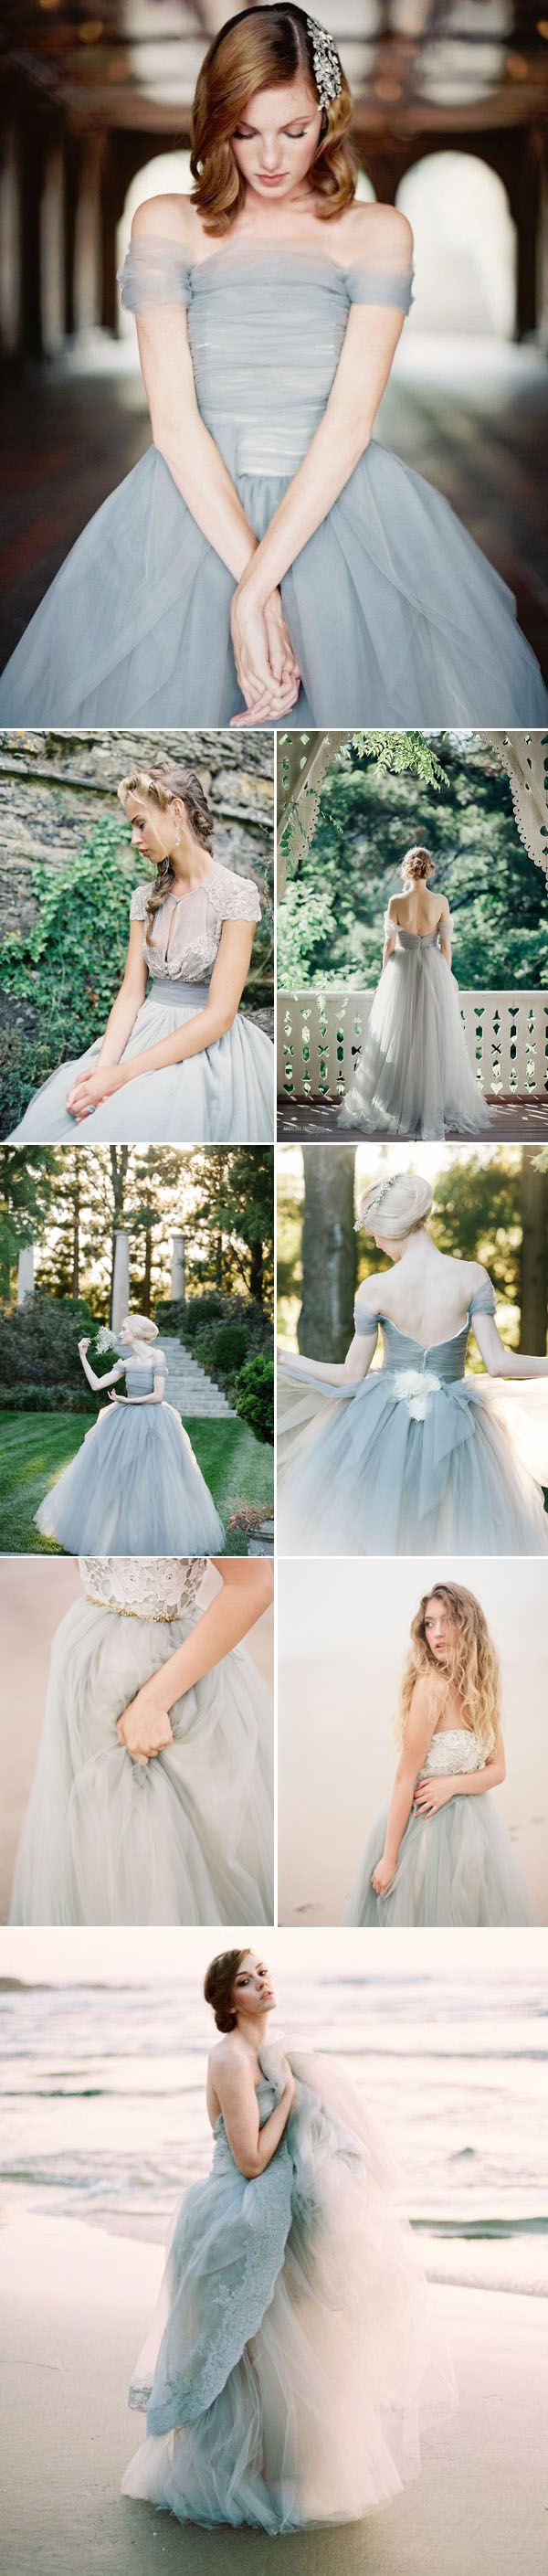 32 Mint, Grey, Blush and Gold Wedding Dresses | http://www.deerpearlflowers.com/32-mint-grey-blush-and-gold-wedding-dresses/